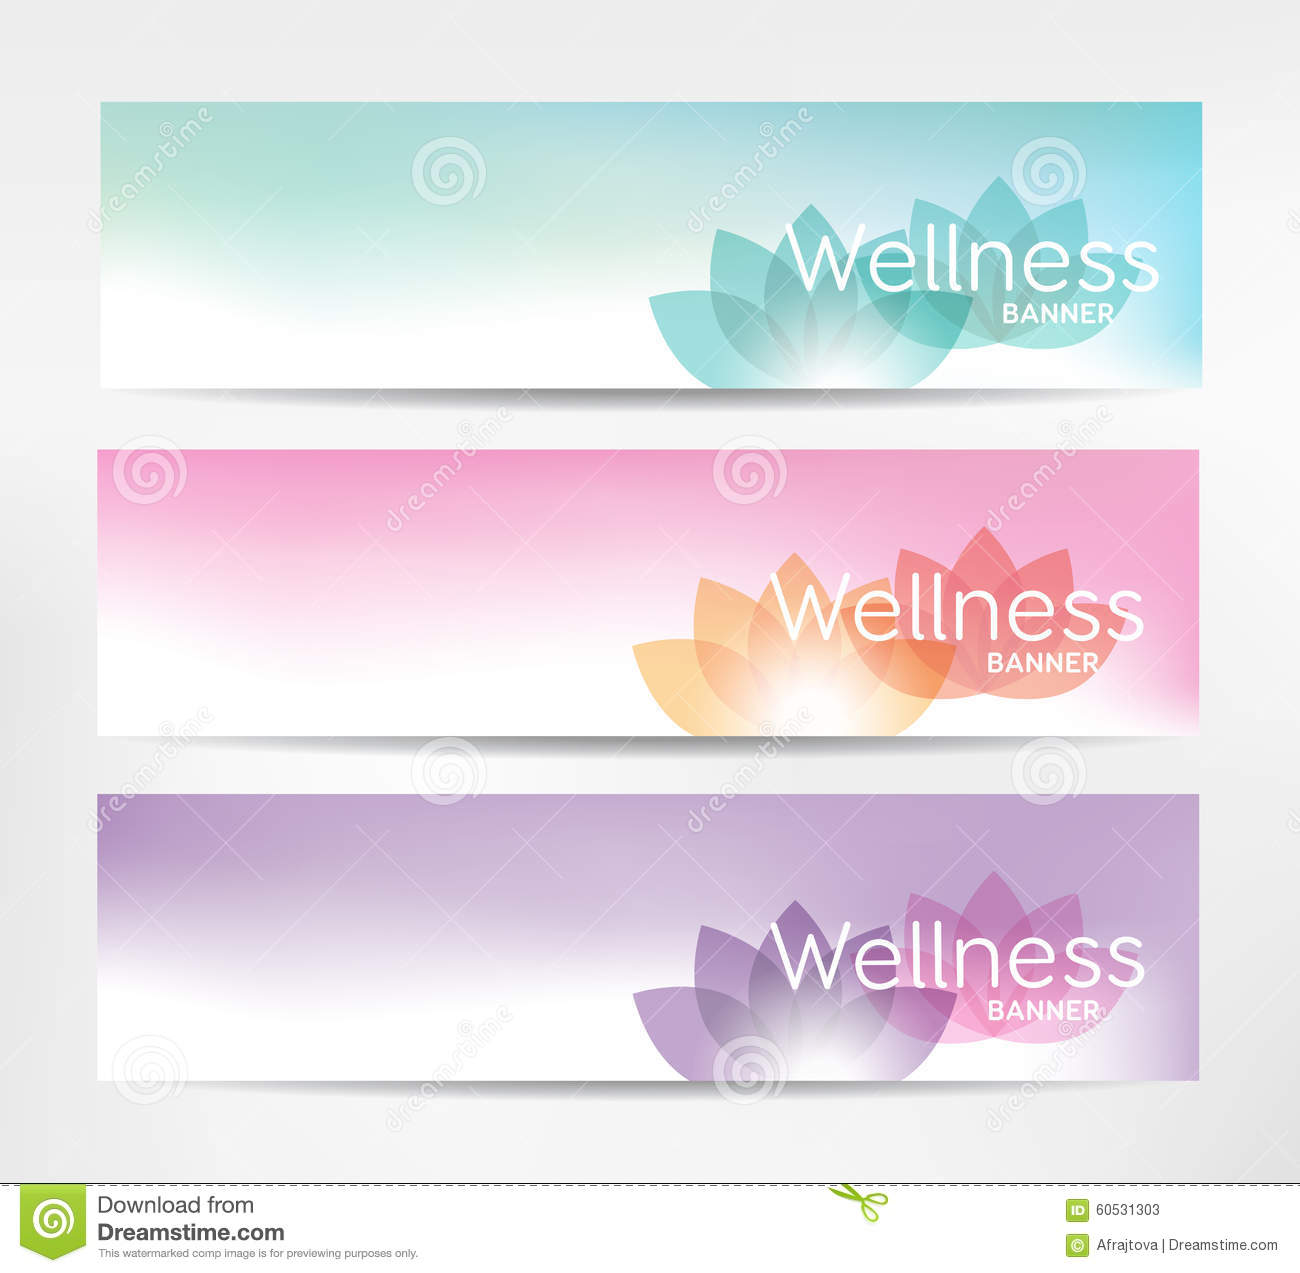 Wellness Banners Stock Vector. Illustration Of Exercise